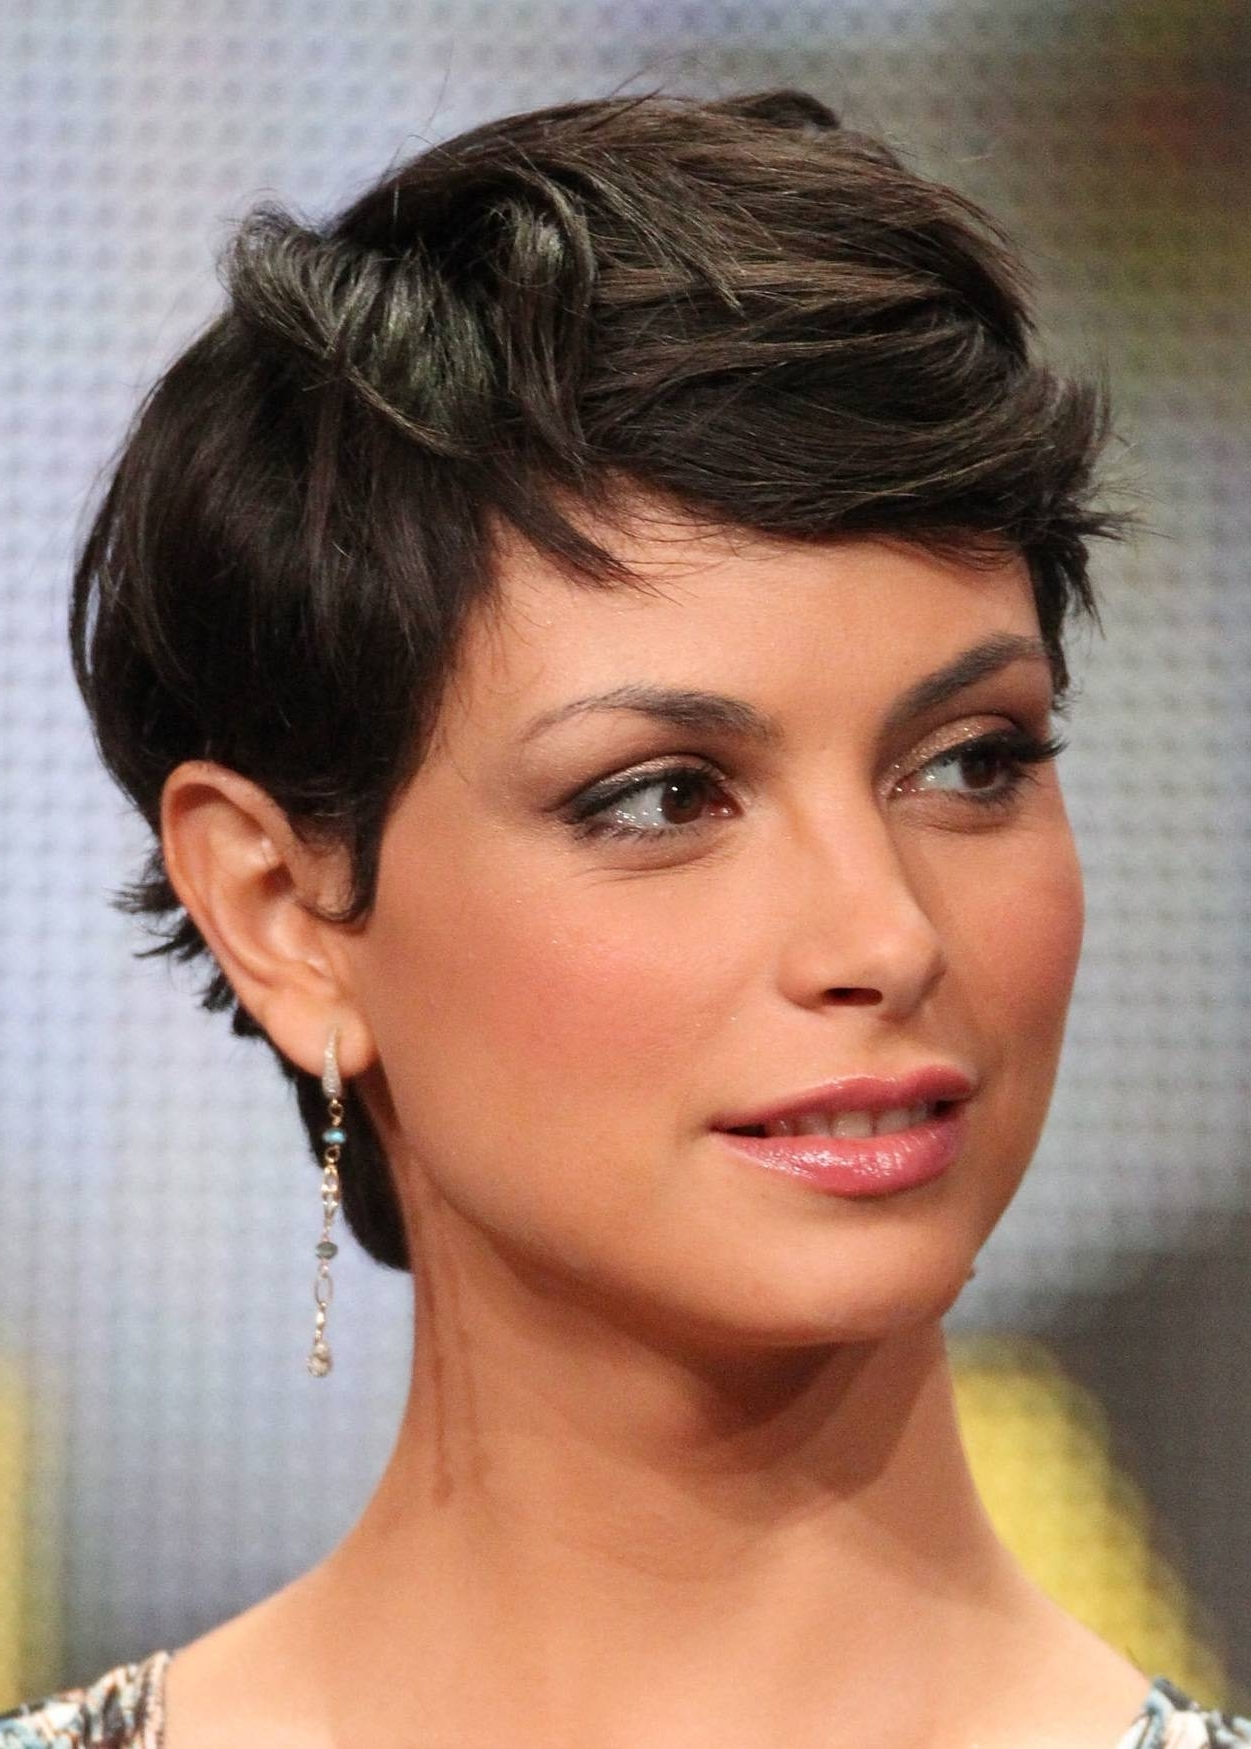 Pixie Hairstyle • Your Hair Club Regarding Latest Pixie Hairstyles For Women (View 10 of 15)